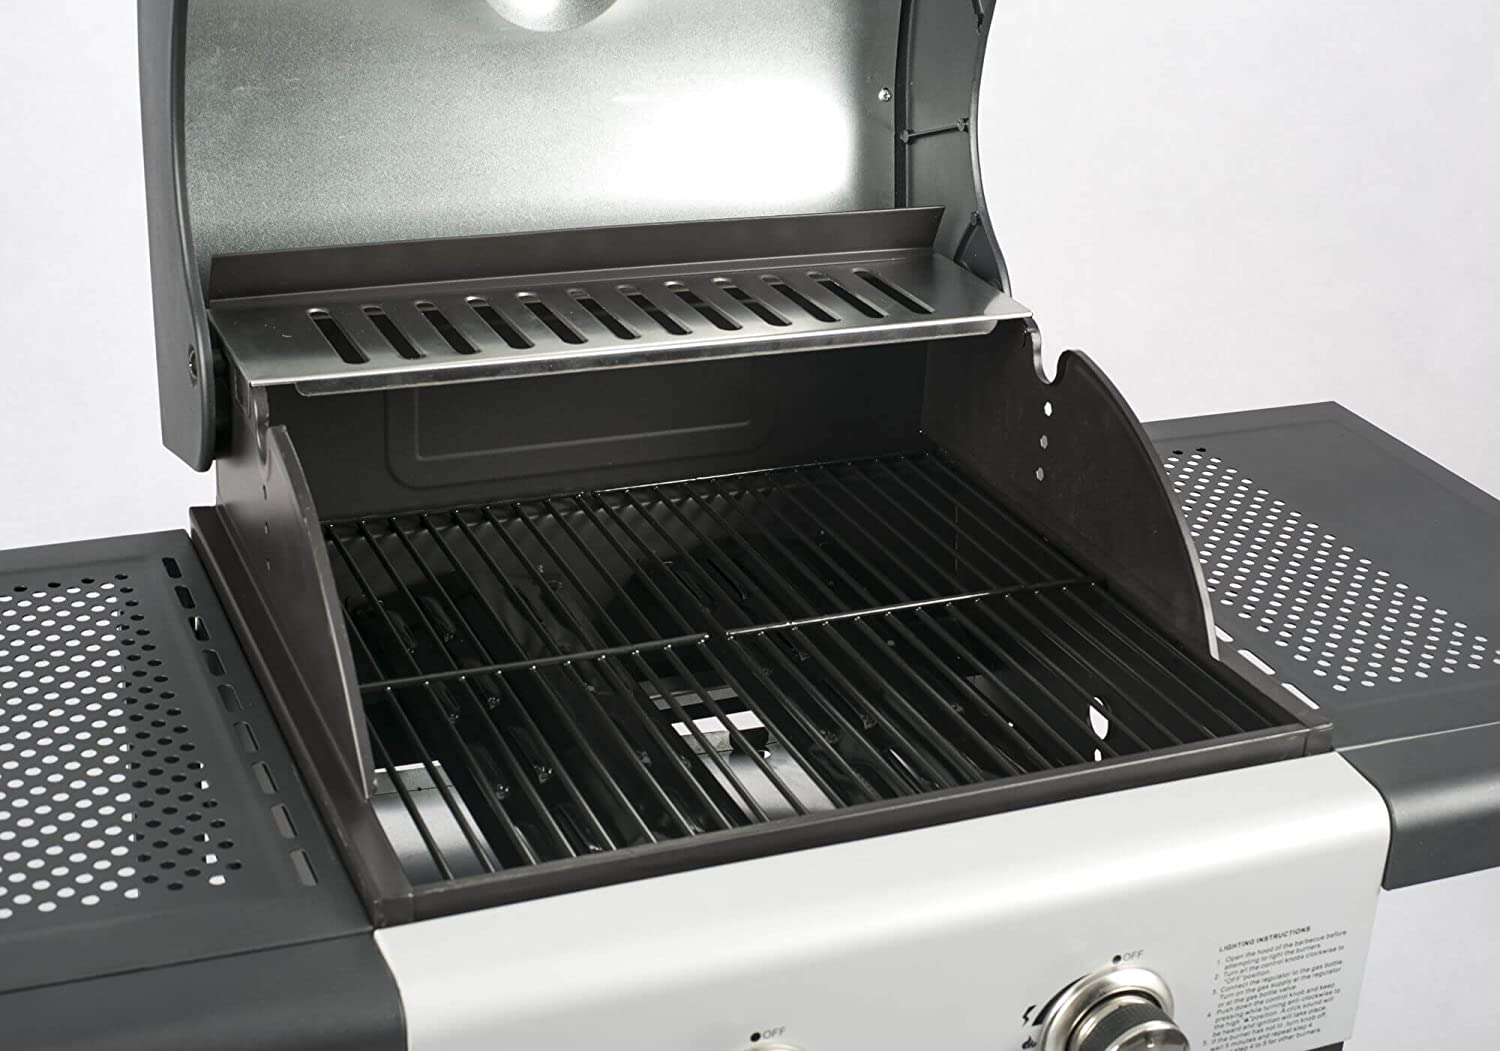 Mayer Gasgrill Zunda Test : Mayer barbecue zunda gasgrill mgg s pro amazon garten